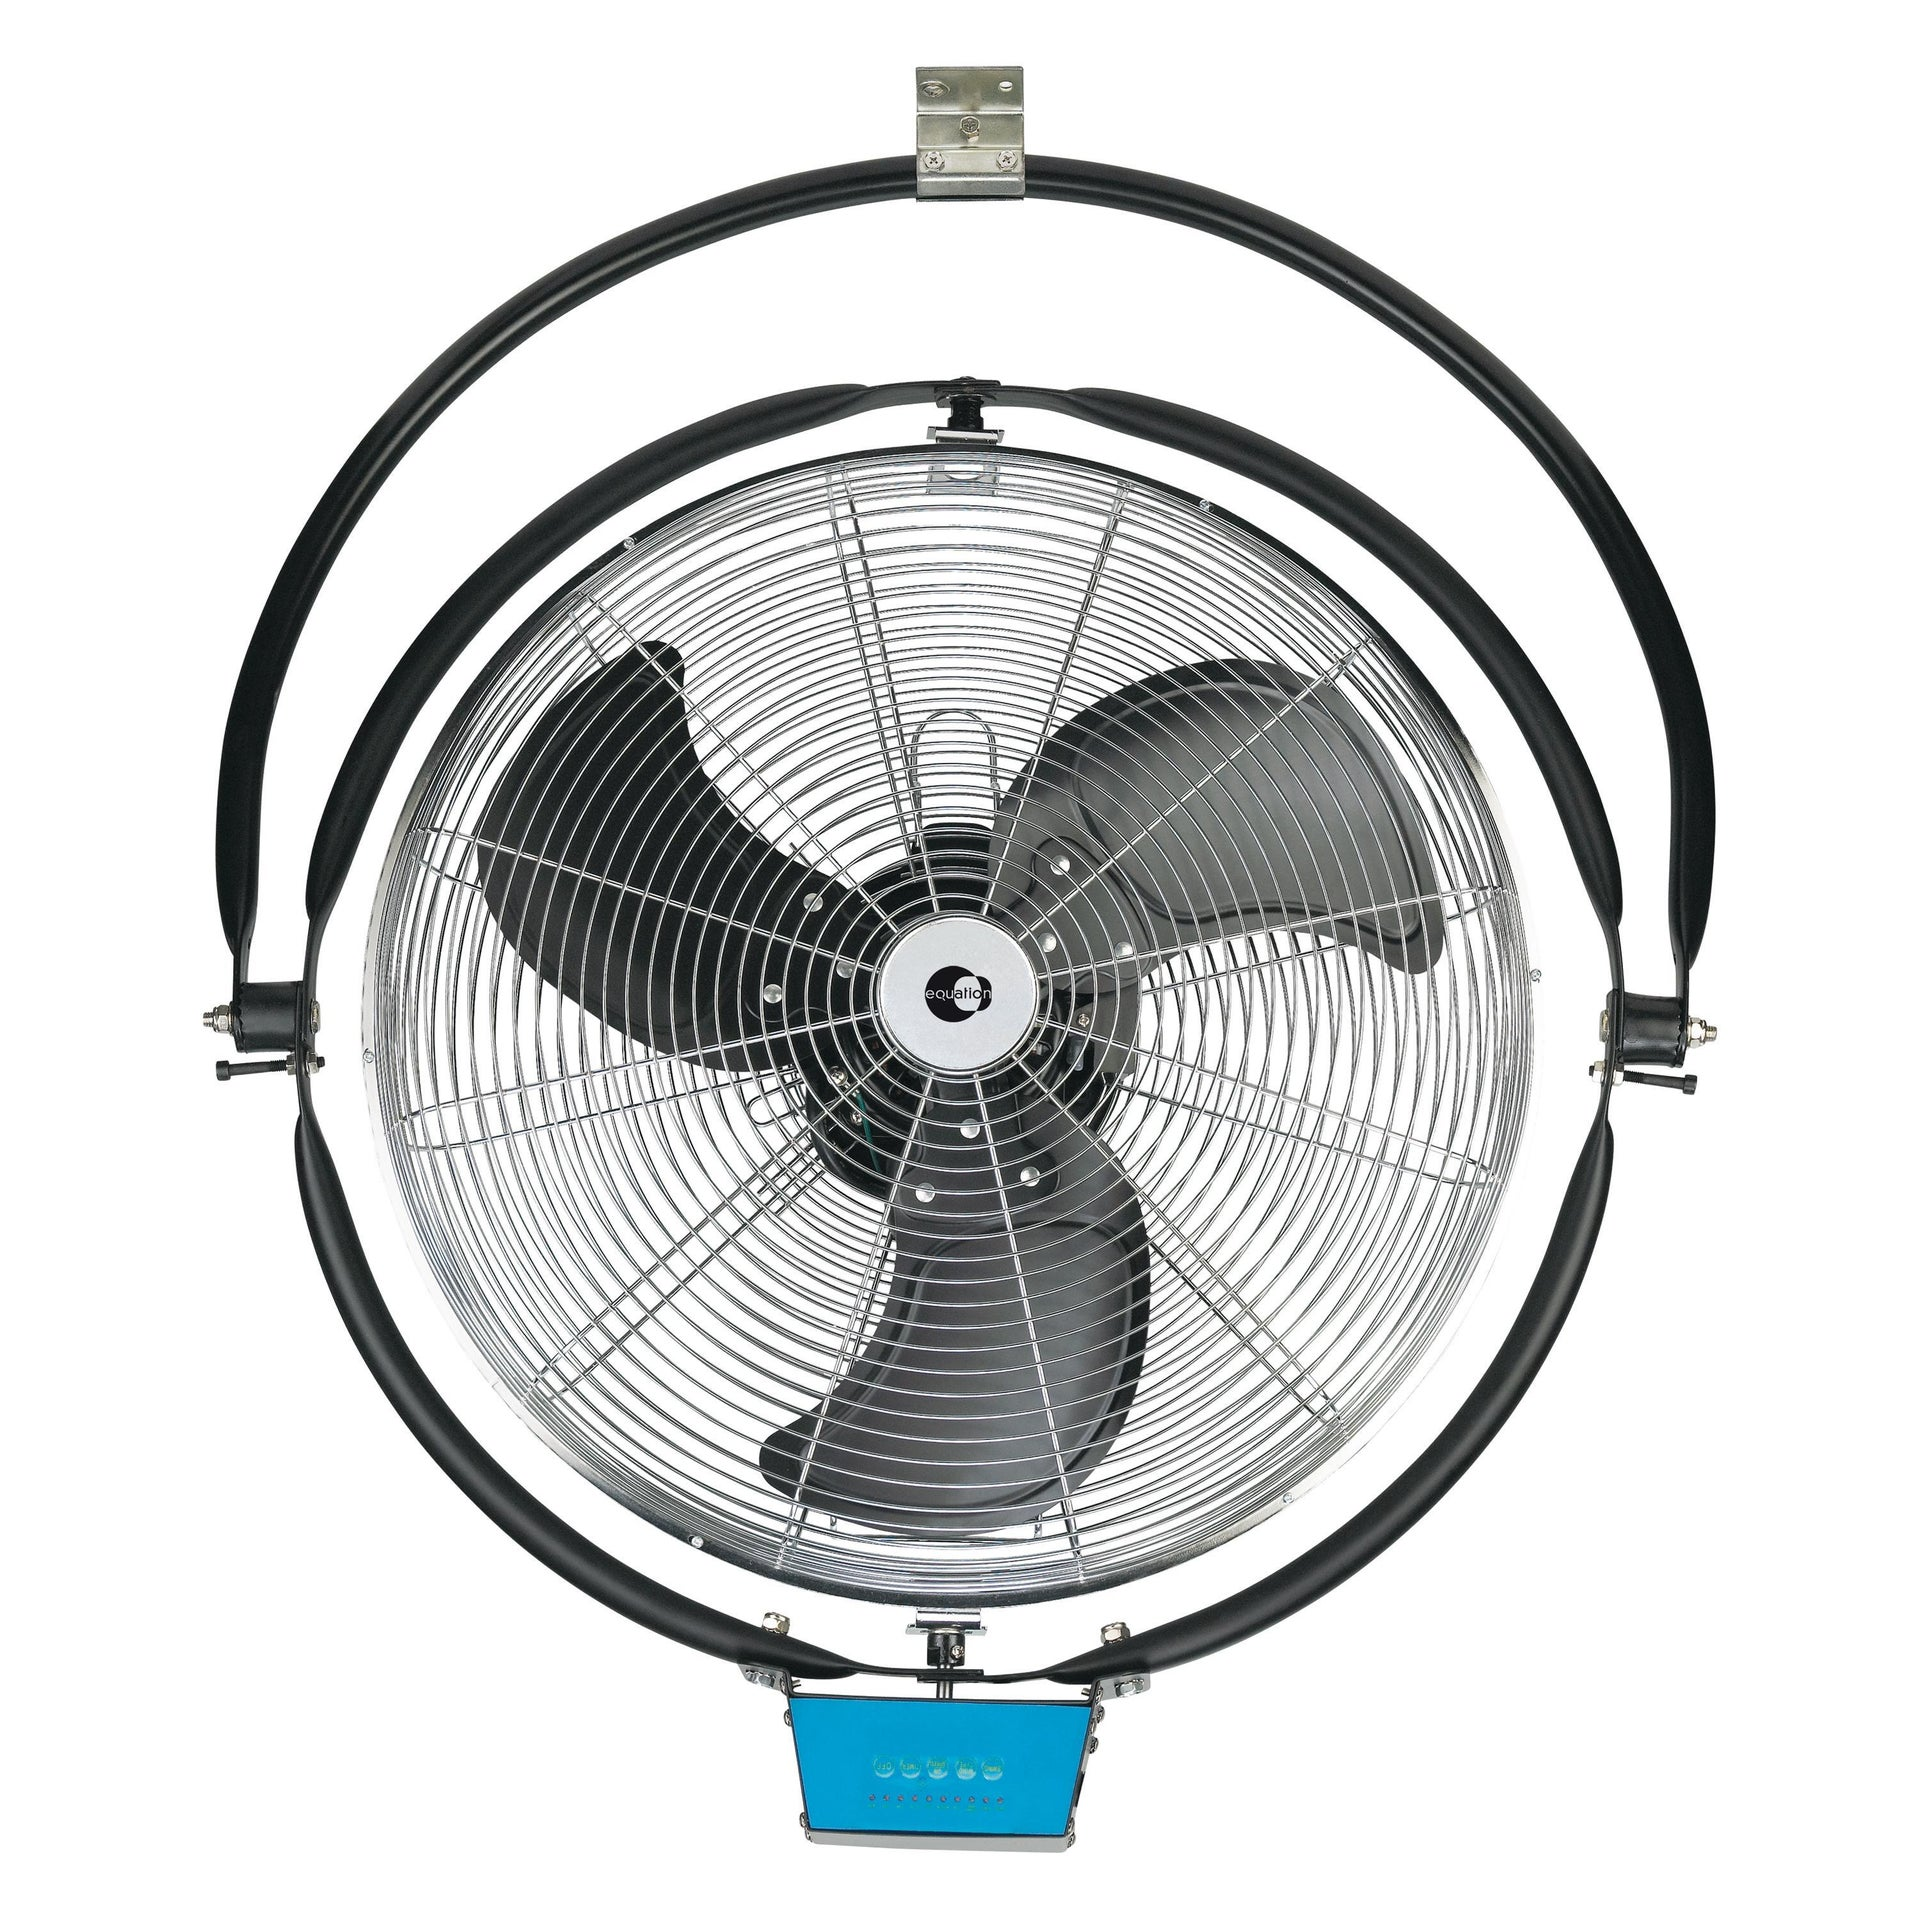 Ventilatore a parete EQUATION SFW1A500BOWRC cromo silver 111 W Ø 50 cm - 2